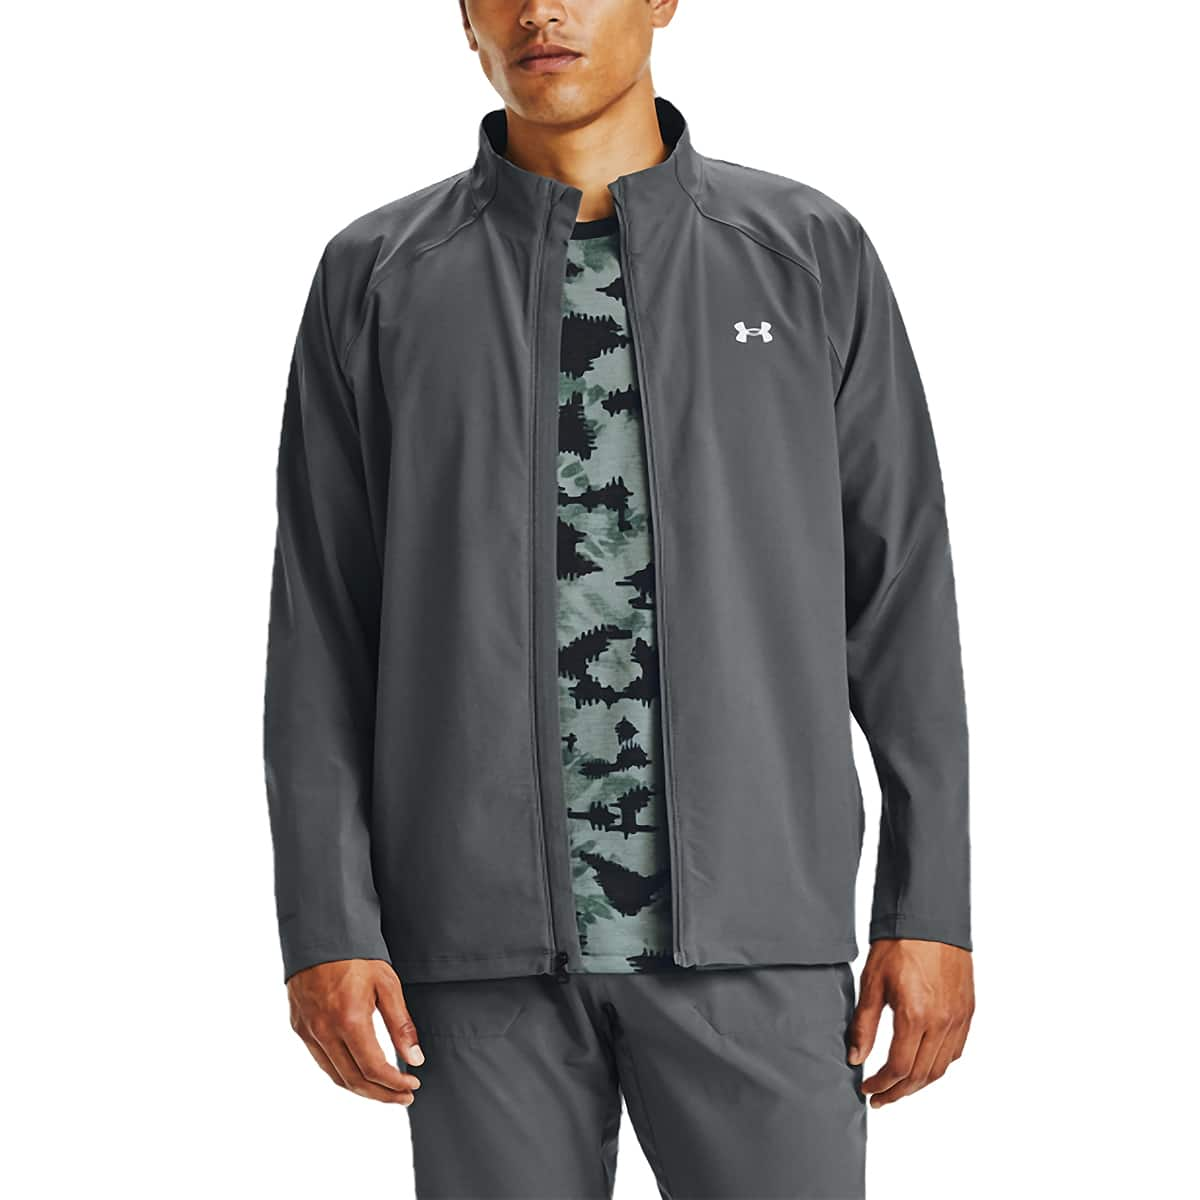 Under Armour Storm Launch Men's 3.0 Jacket $30 & More + Free Shipping